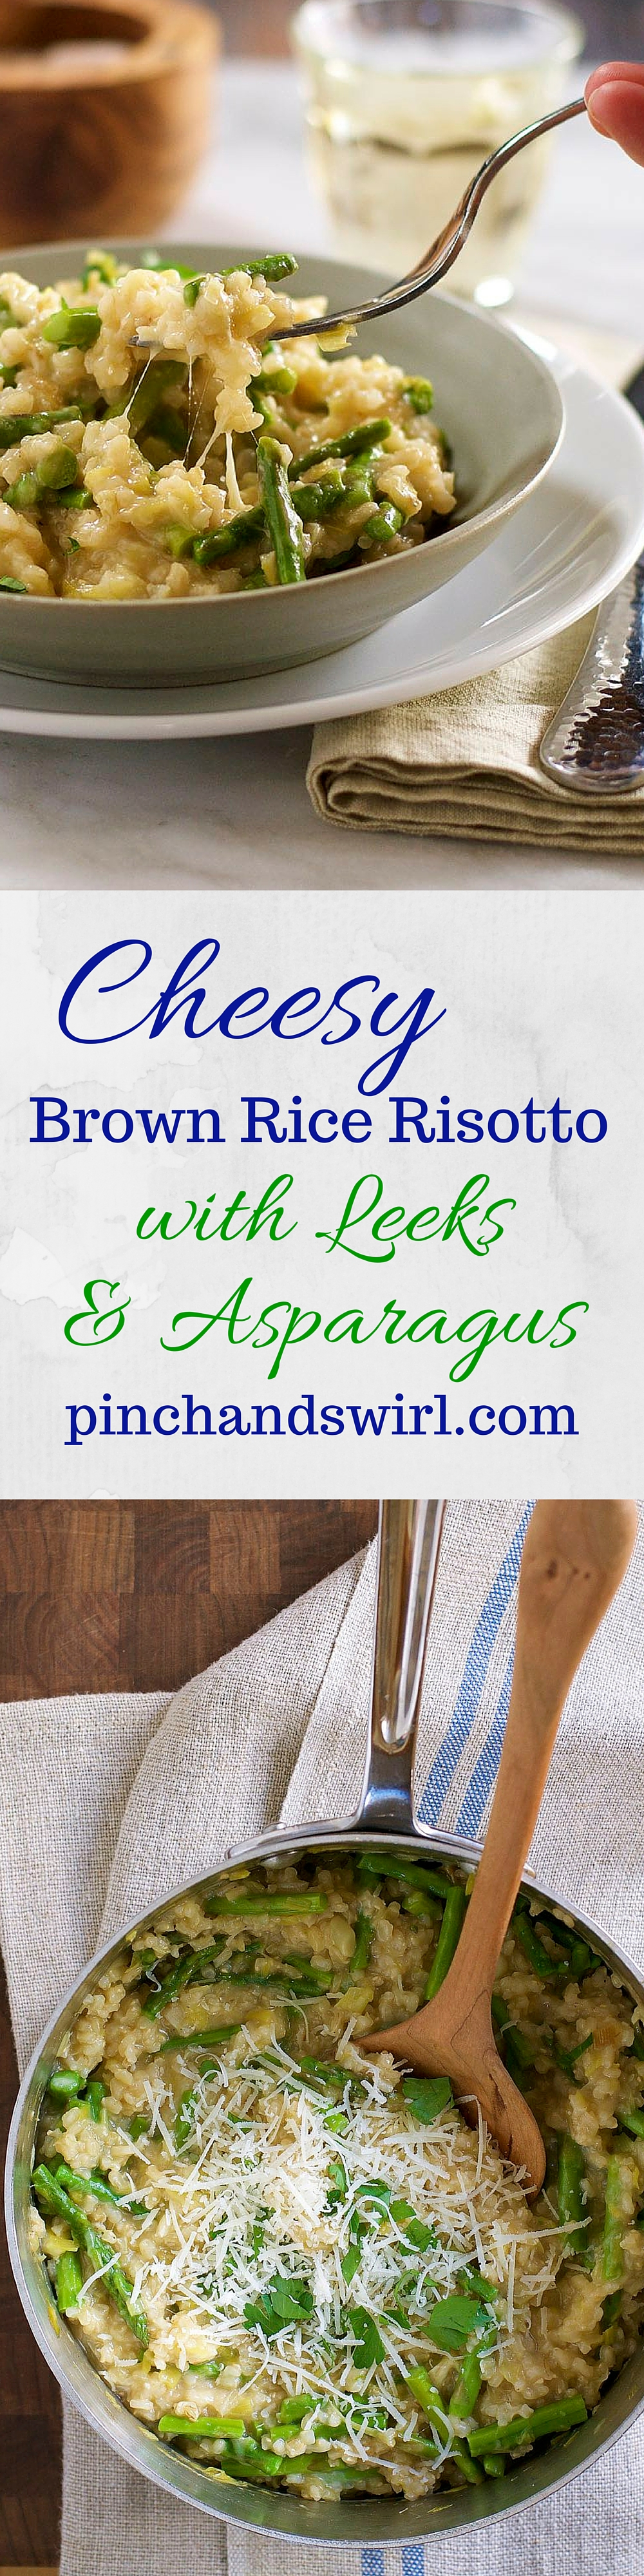 Cheesy Brown Rice Risotto with Leeks and Asparagus #springrecipes #recipe #asparagus #risotto